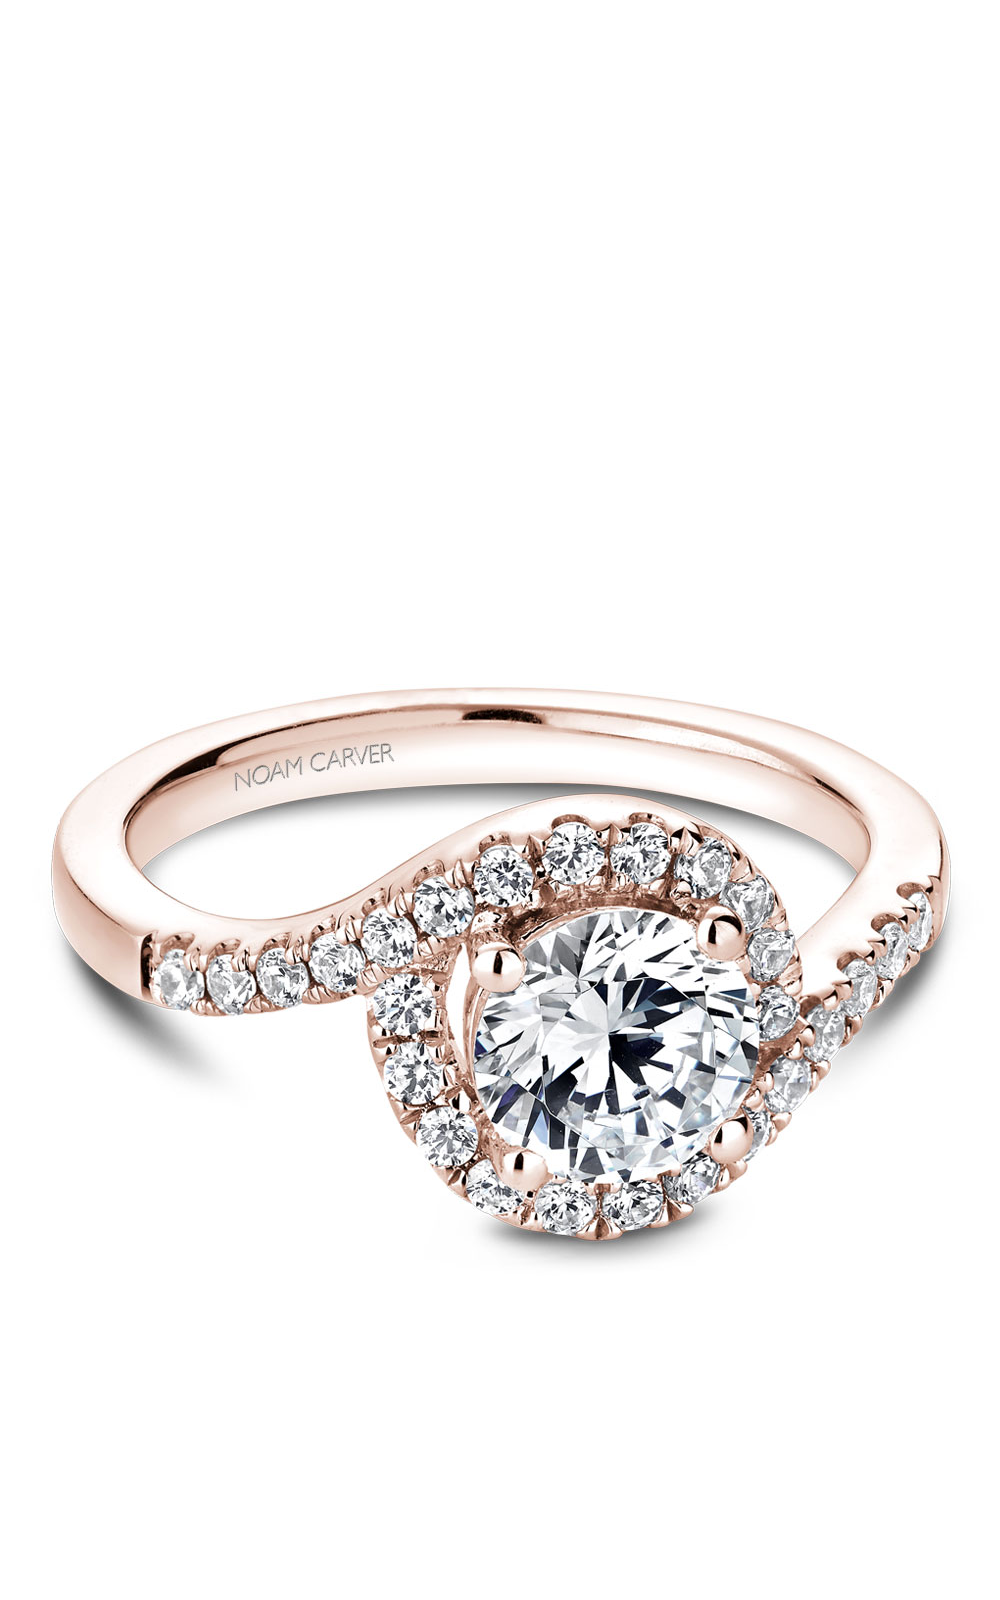 Noam Carver Halo Engagement Ring B186-01RM product image